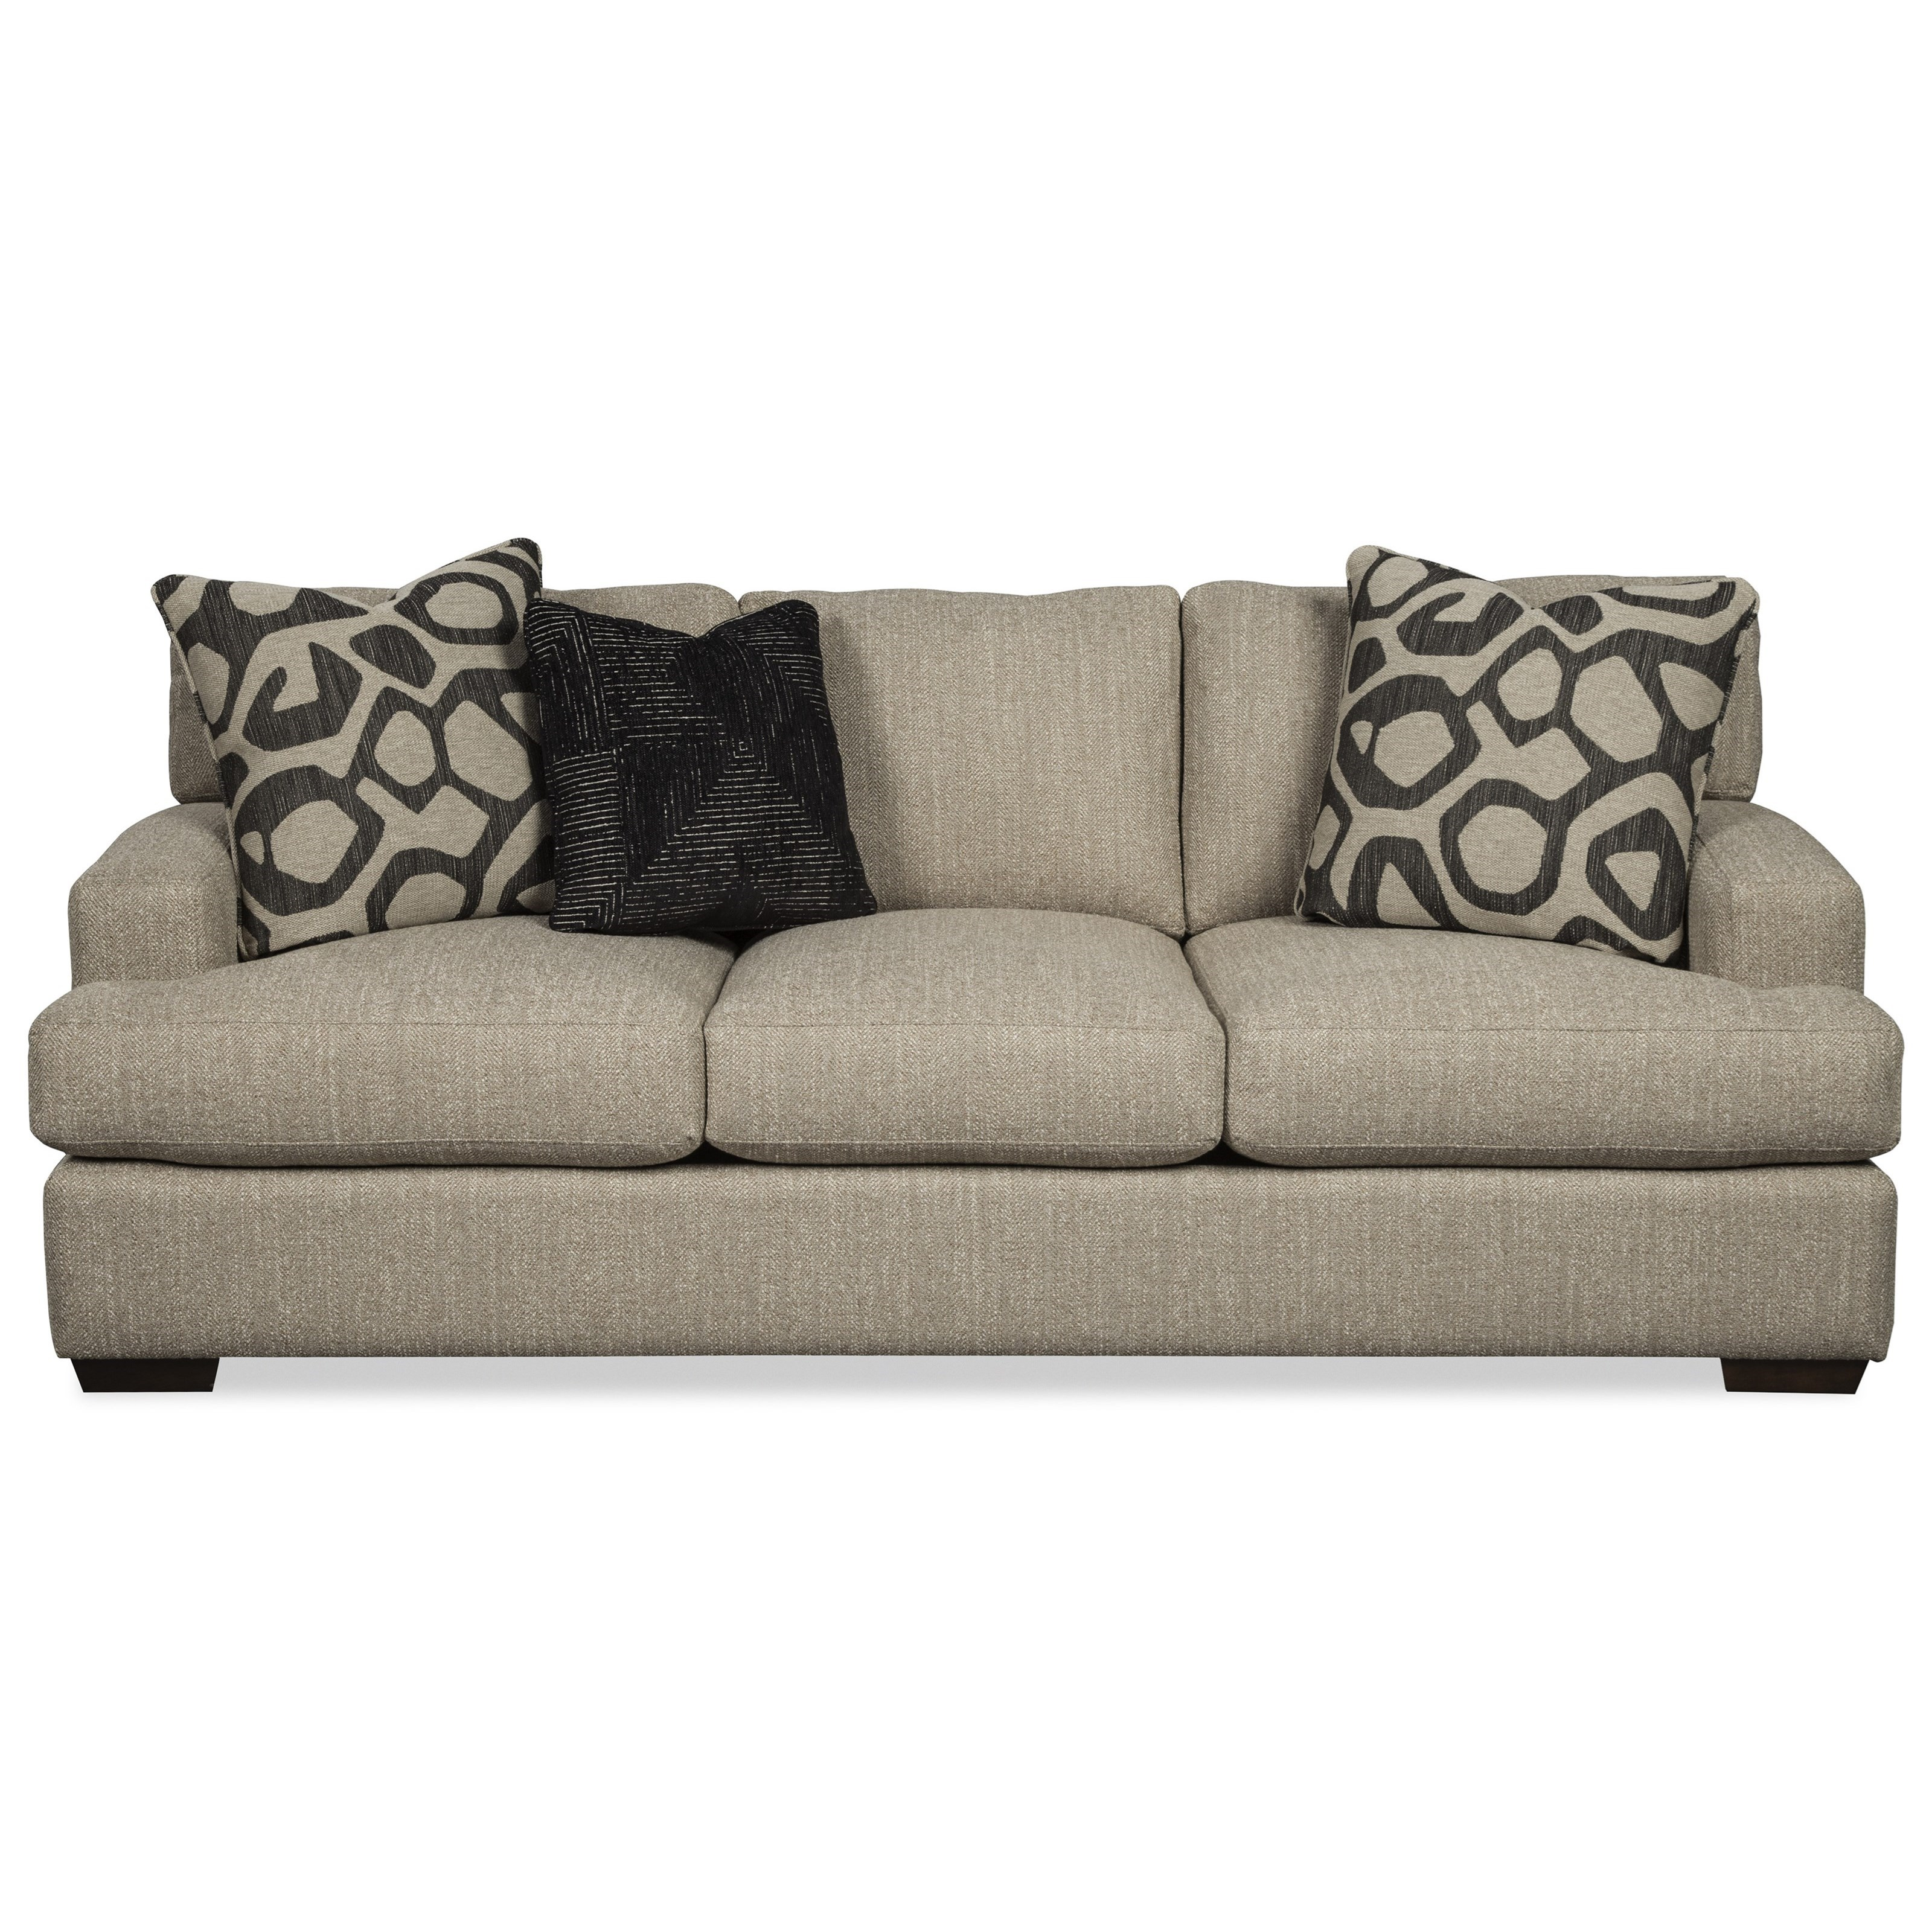 Craftmaster 785350 785350BD Contemporary Sofa with Wide Rounded ...